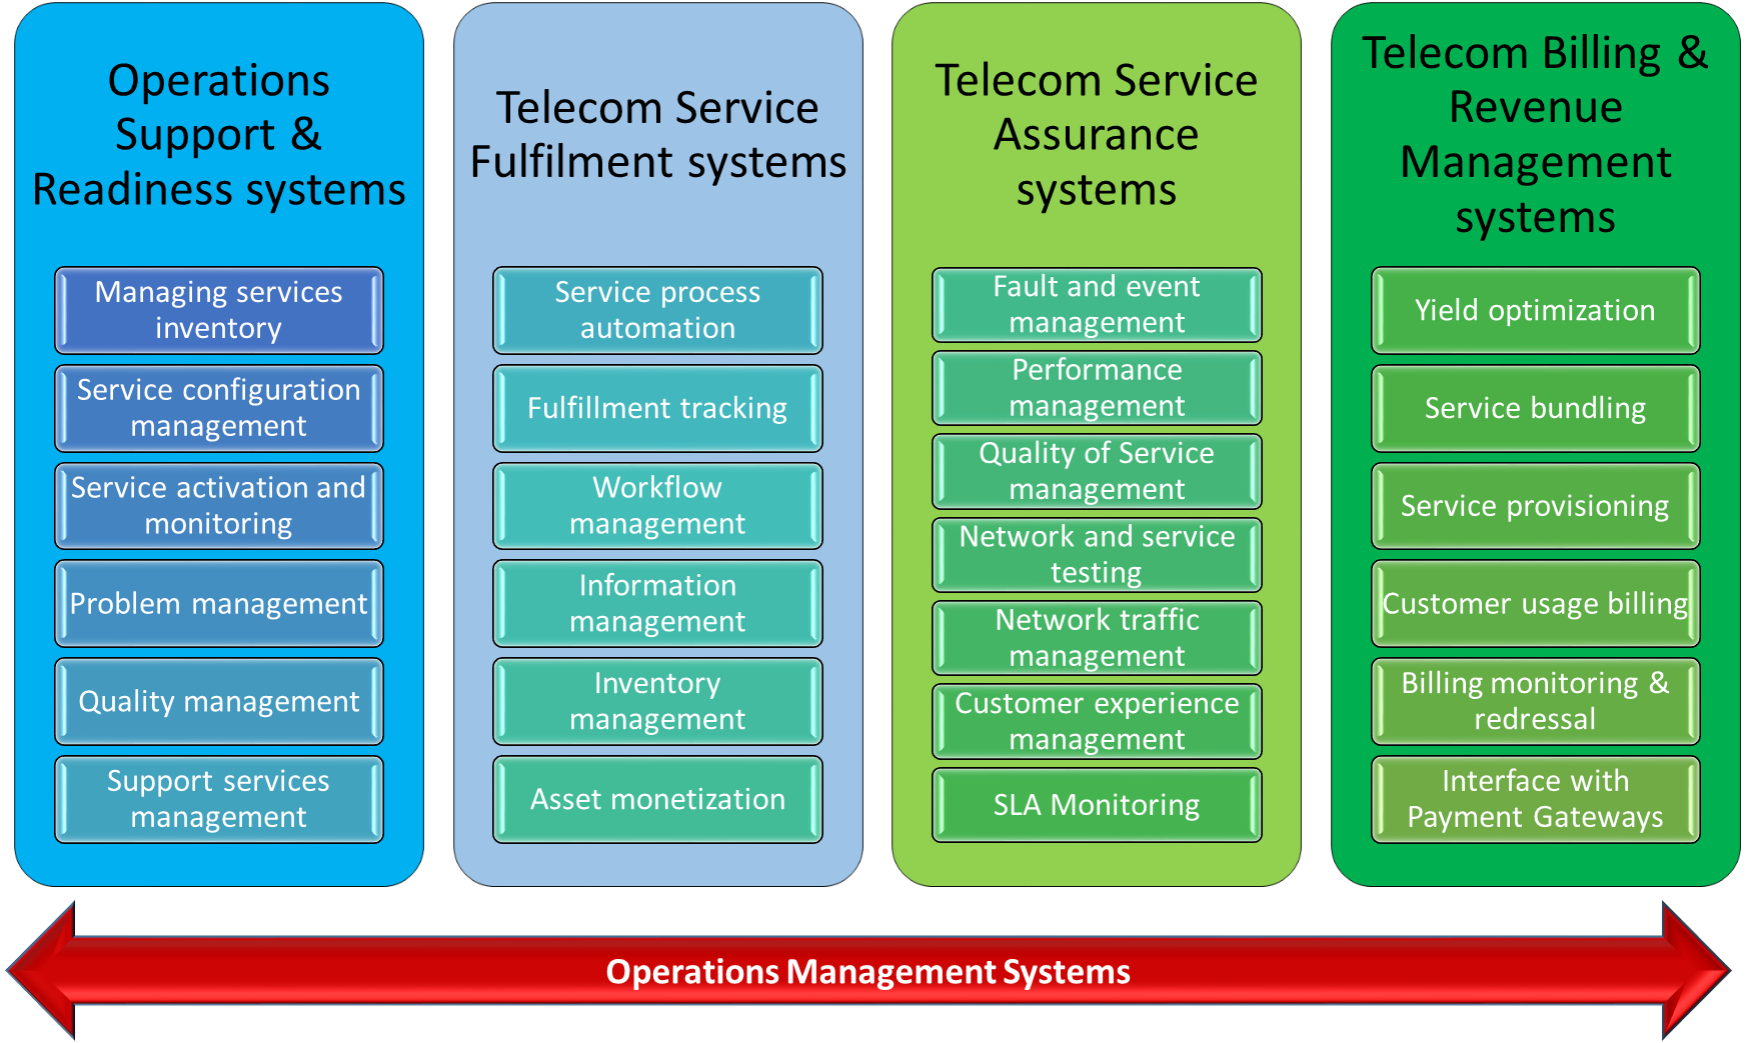 Telecommunication Management Systems & Network | Tech Talk